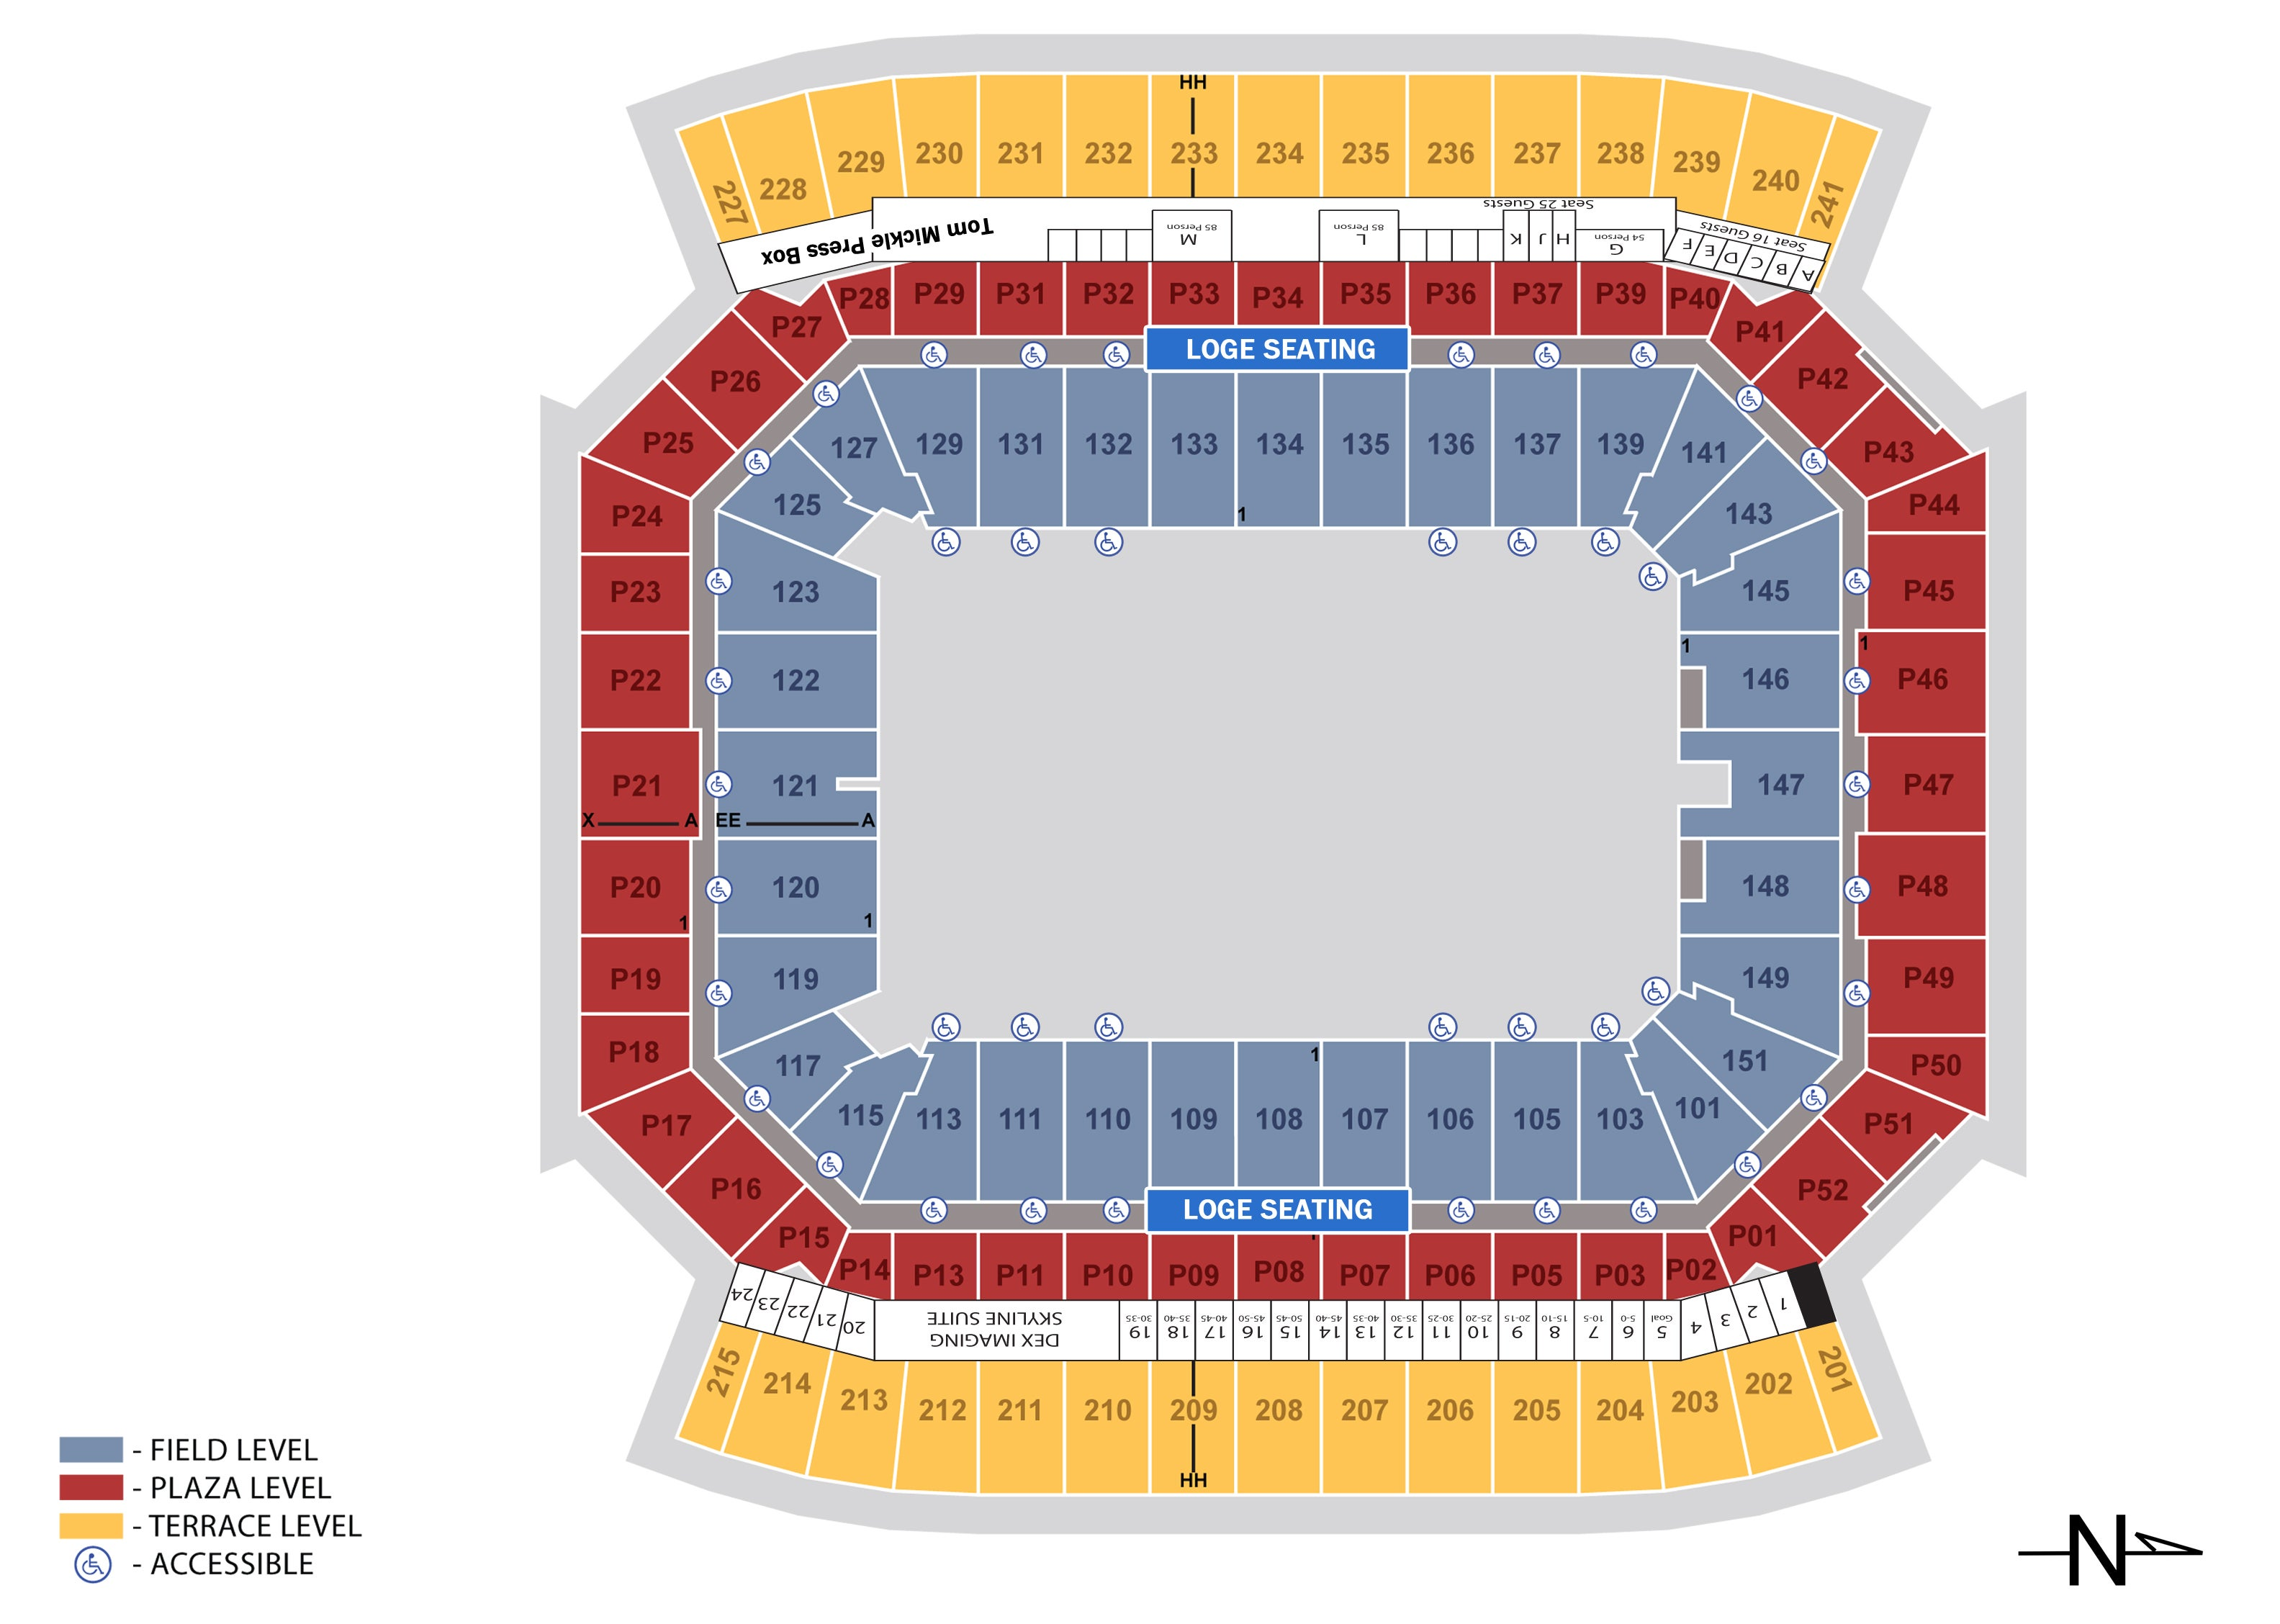 Seating charts camping world stadium